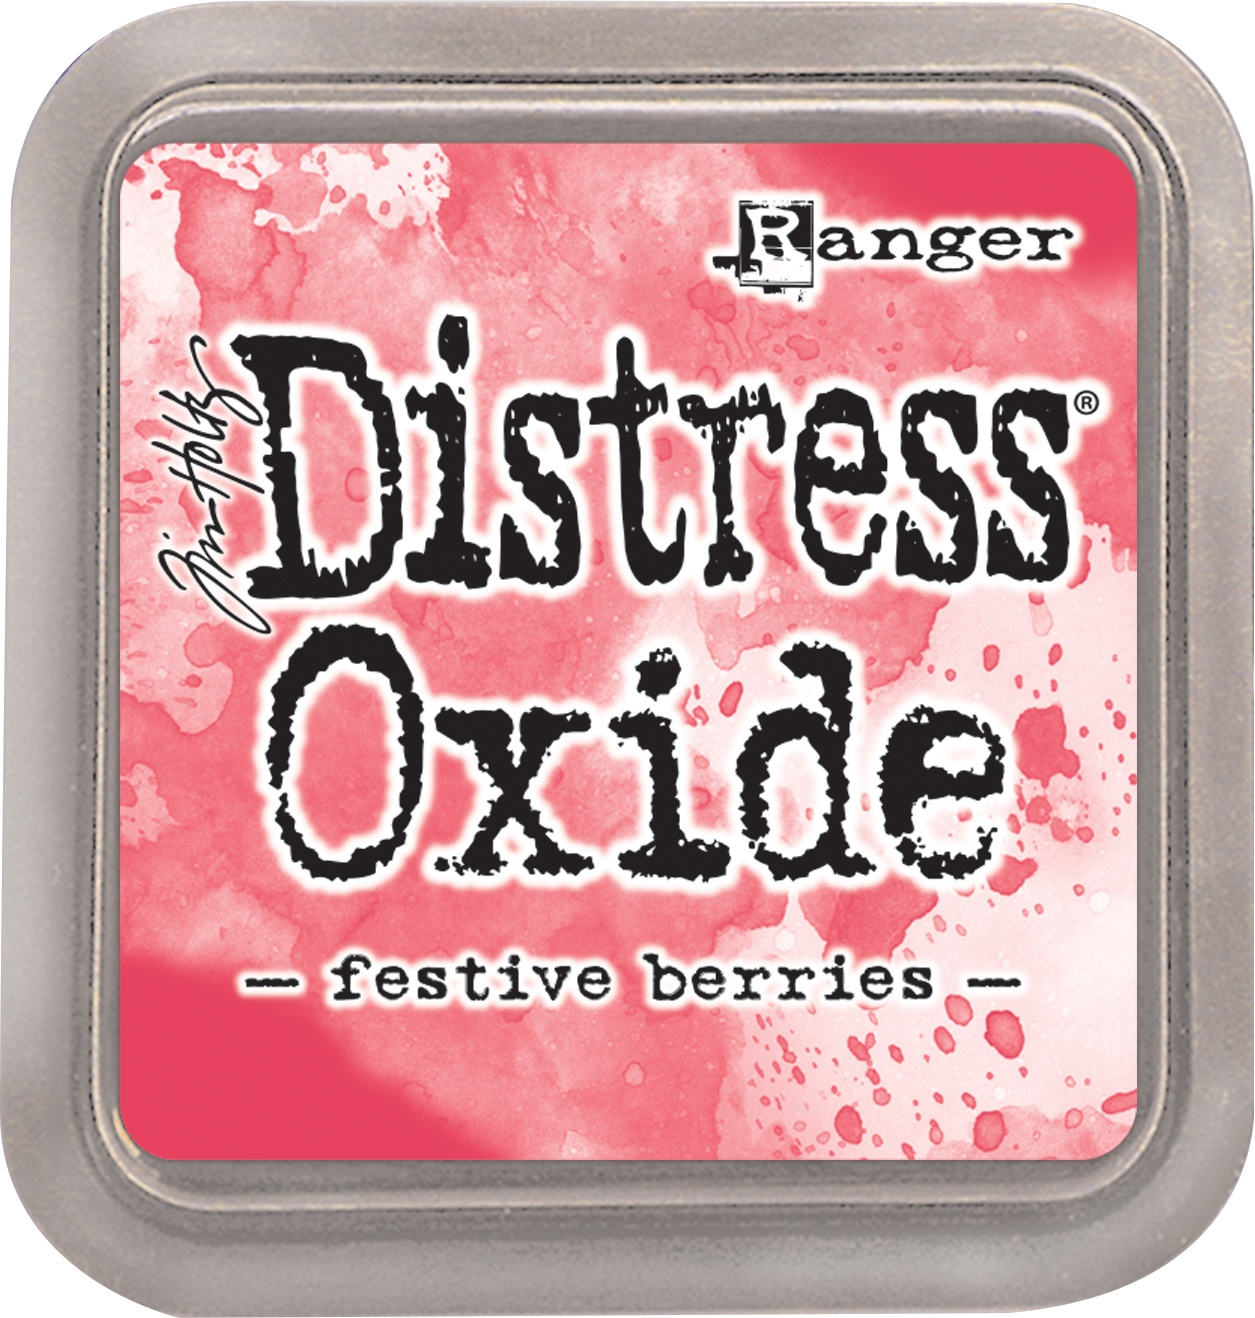 Tim Holtz Distress Oxides Ink Pad-Festive Berries